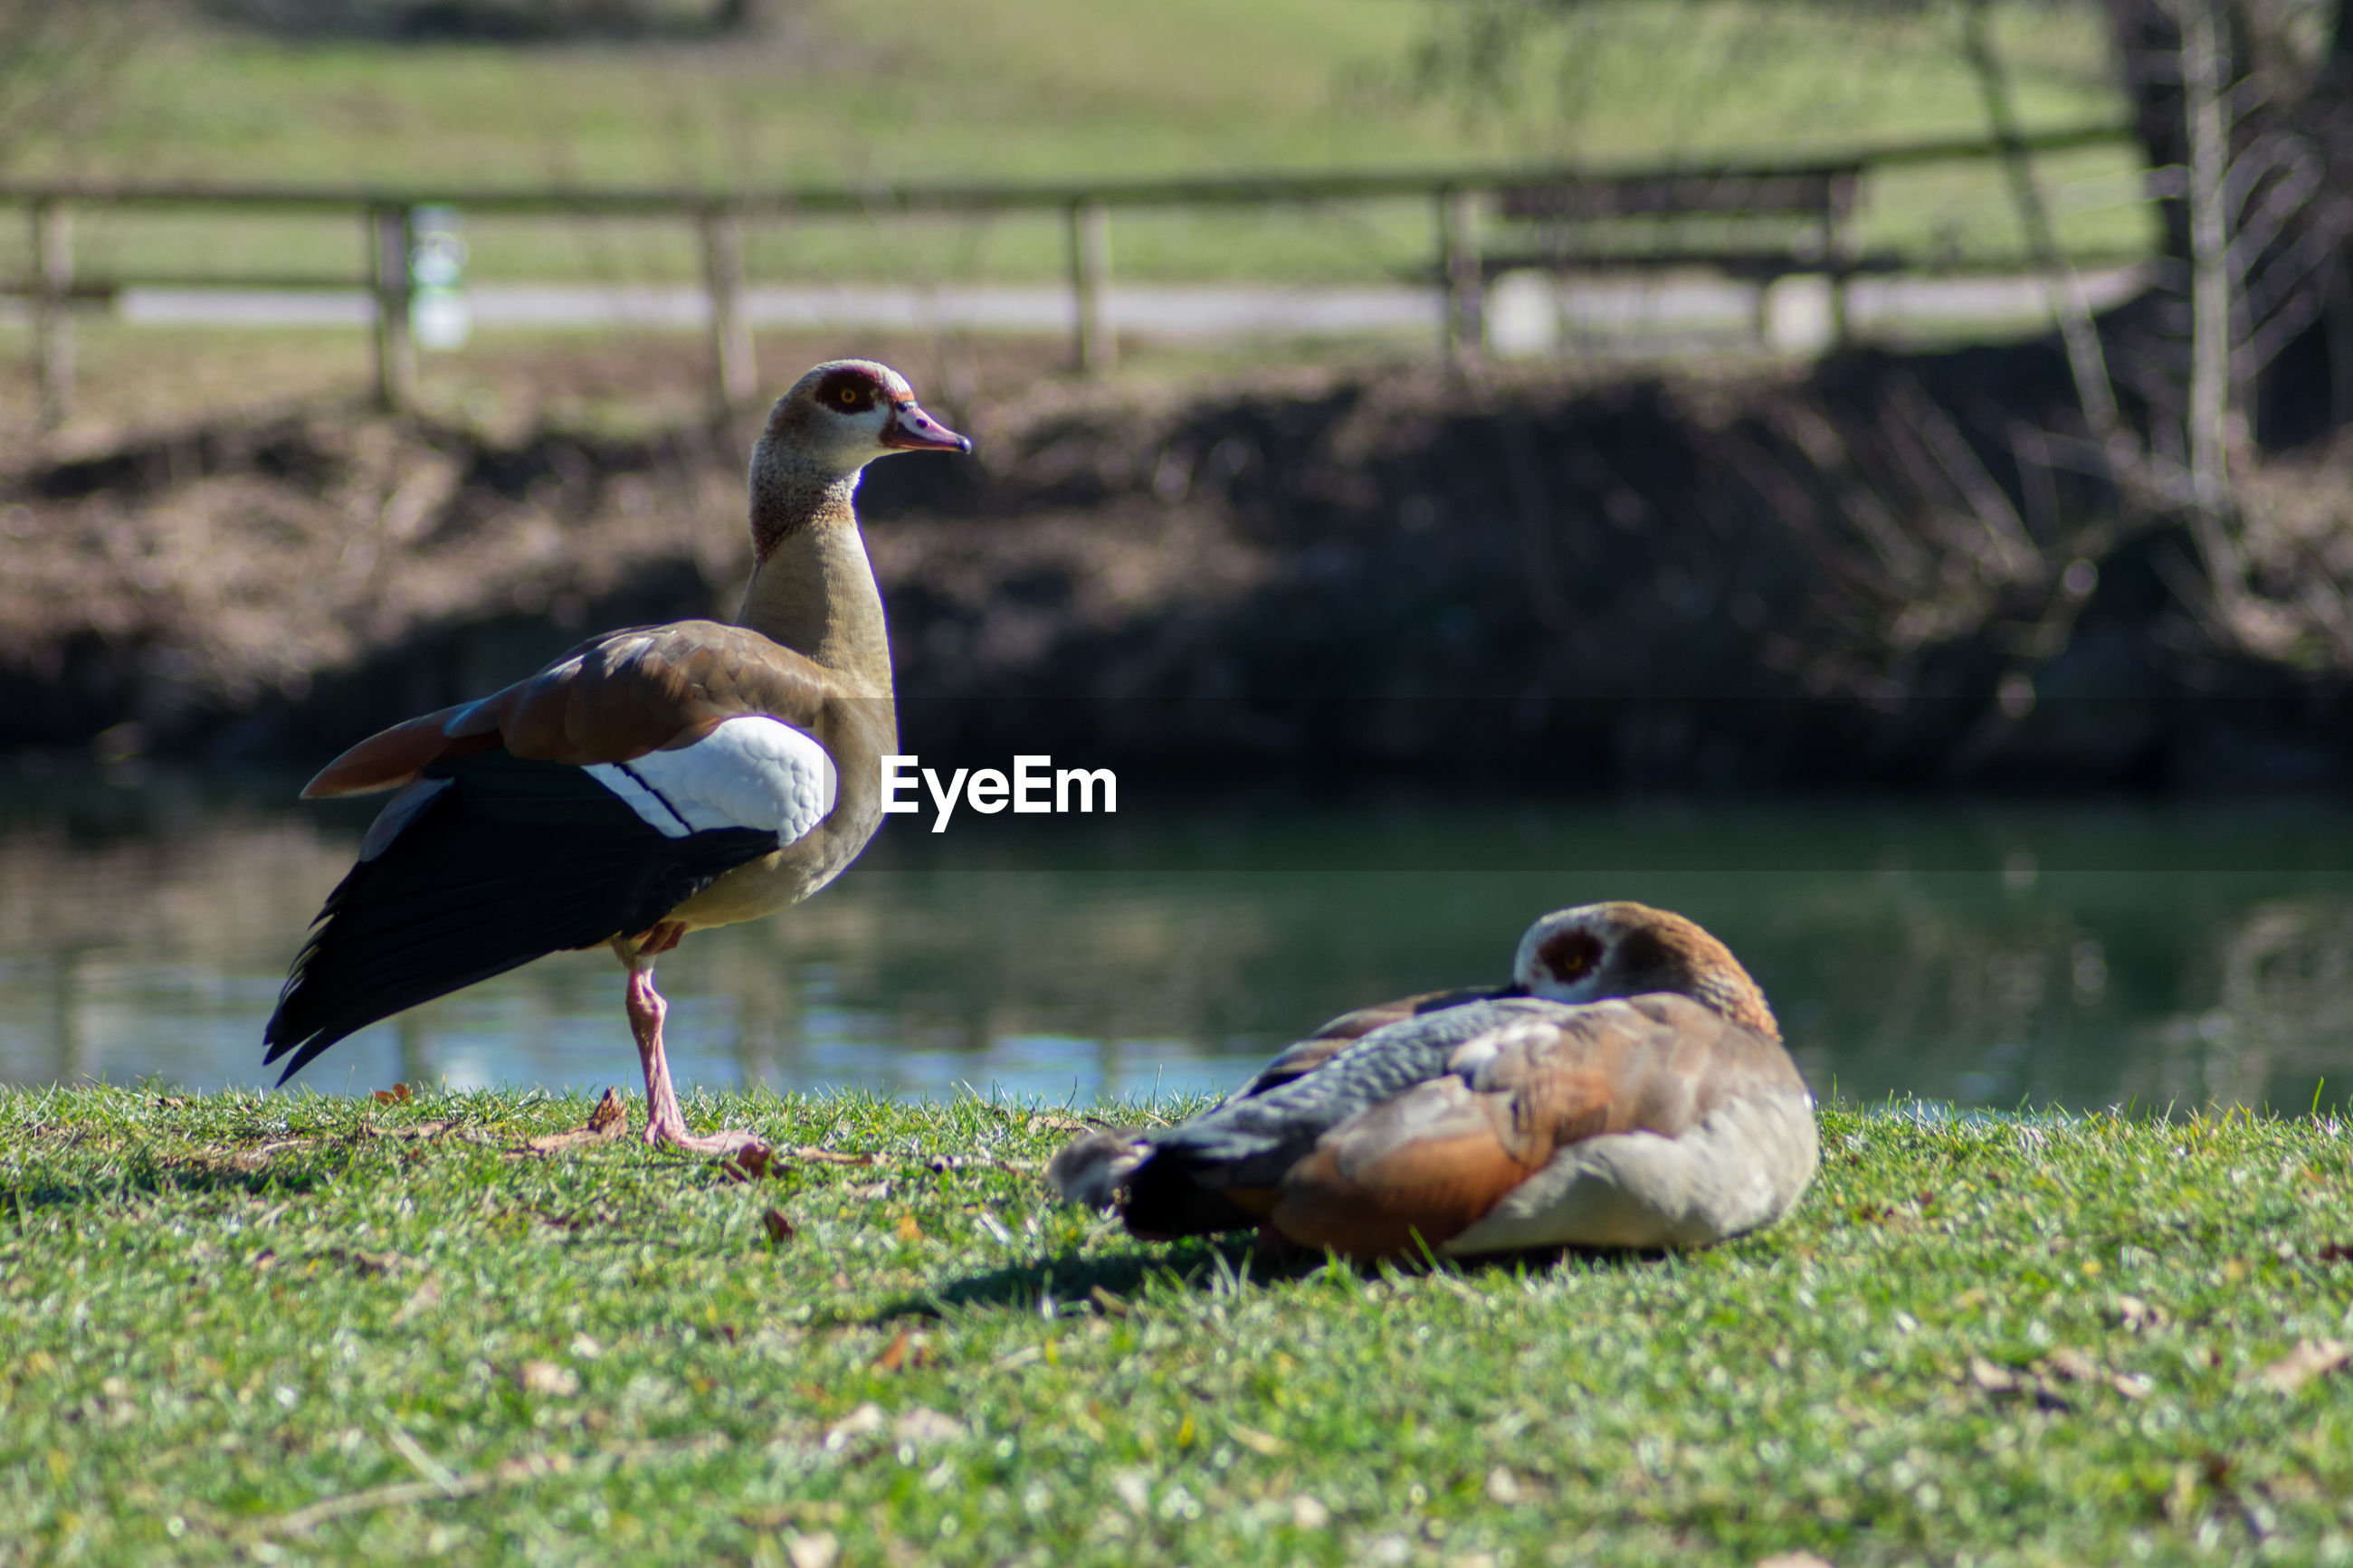 bird, vertebrate, animals in the wild, animal themes, animal, animal wildlife, group of animals, two animals, nature, grass, day, land, selective focus, field, water, lake, no people, water bird, outdoors, focus on foreground, duck, animal family